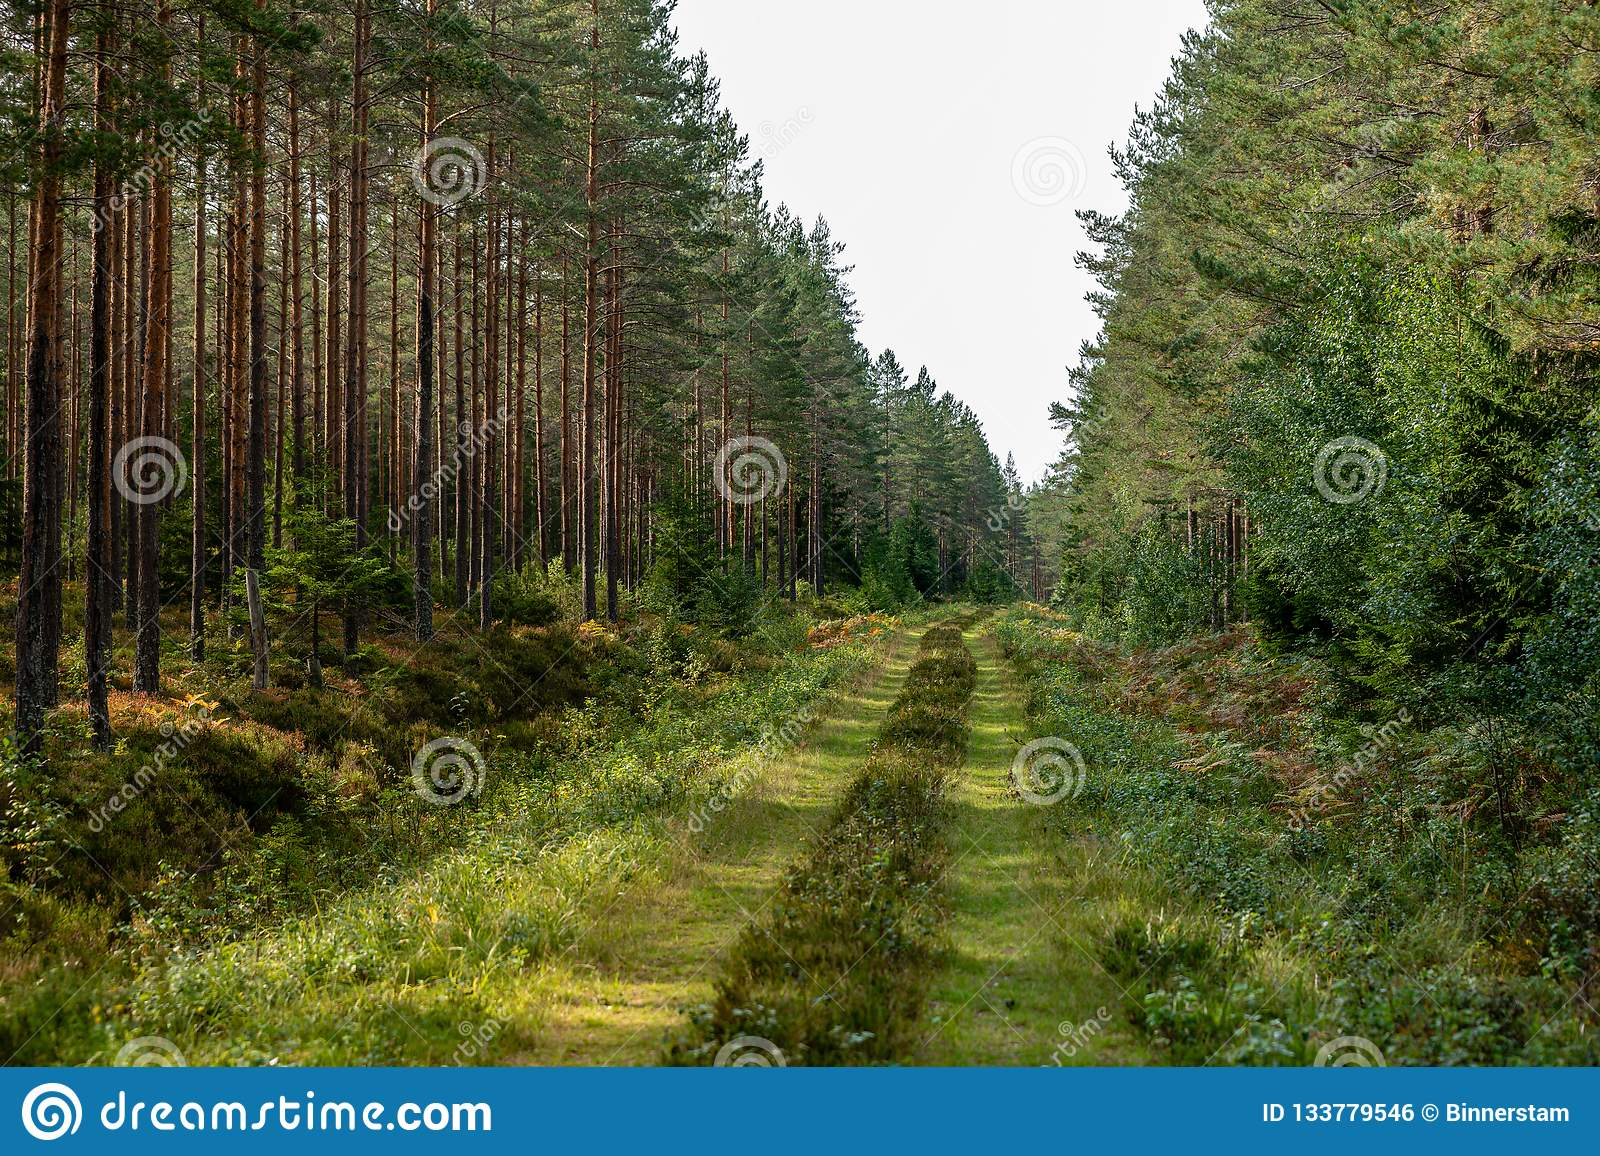 Old overgrown road in a forest